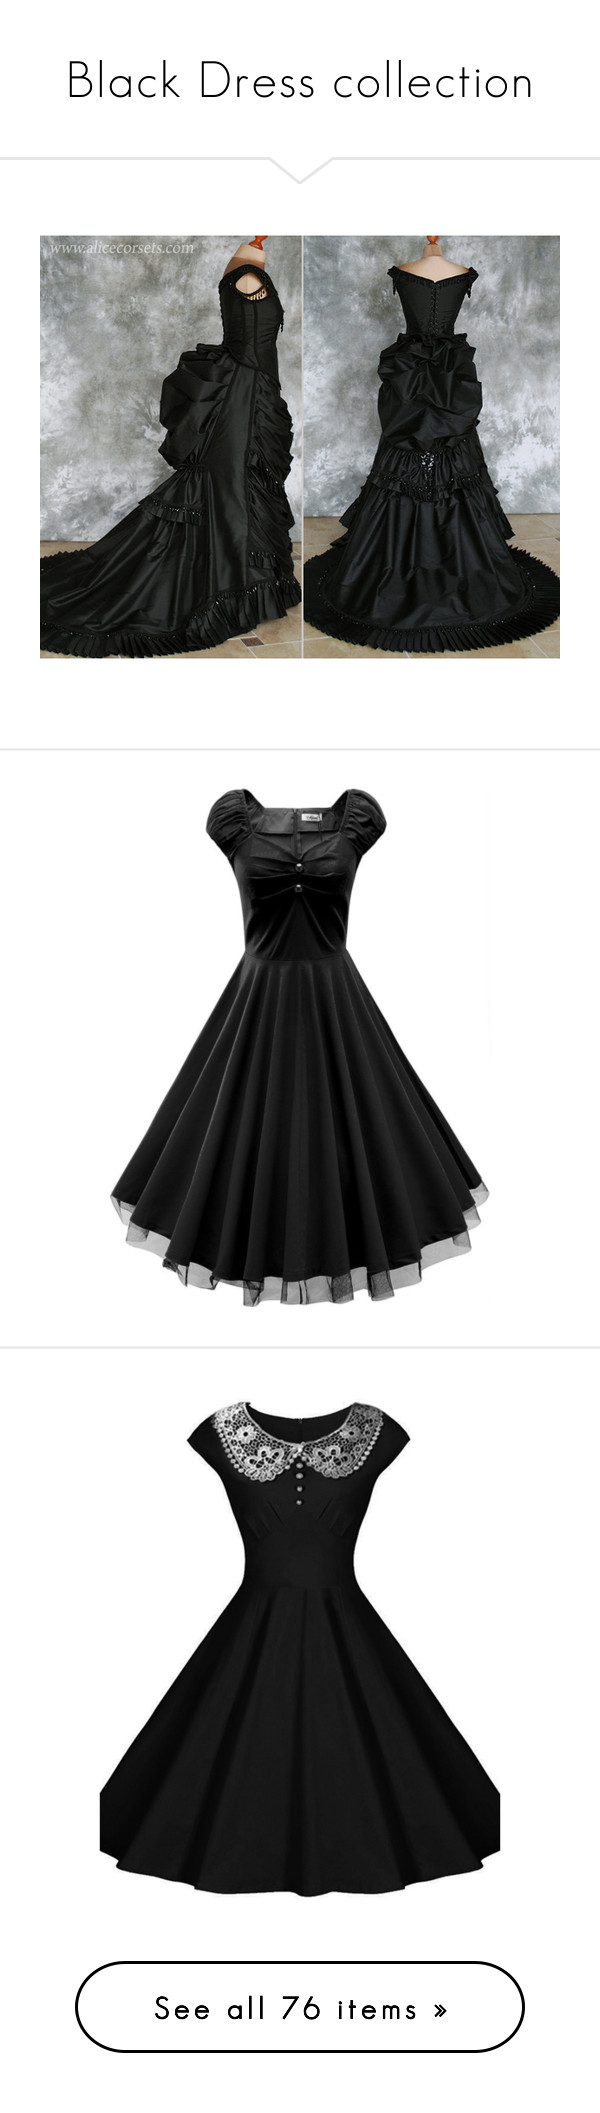 """Black Dress collection"" by thesassystewart on Polyvore featuring costumes, steam punk costume, black costume, victorian vampire costume, vampire halloween costumes, goth costume, dresses, retro rockabilly dress, vintage lace cocktail dress and retro style dresses"